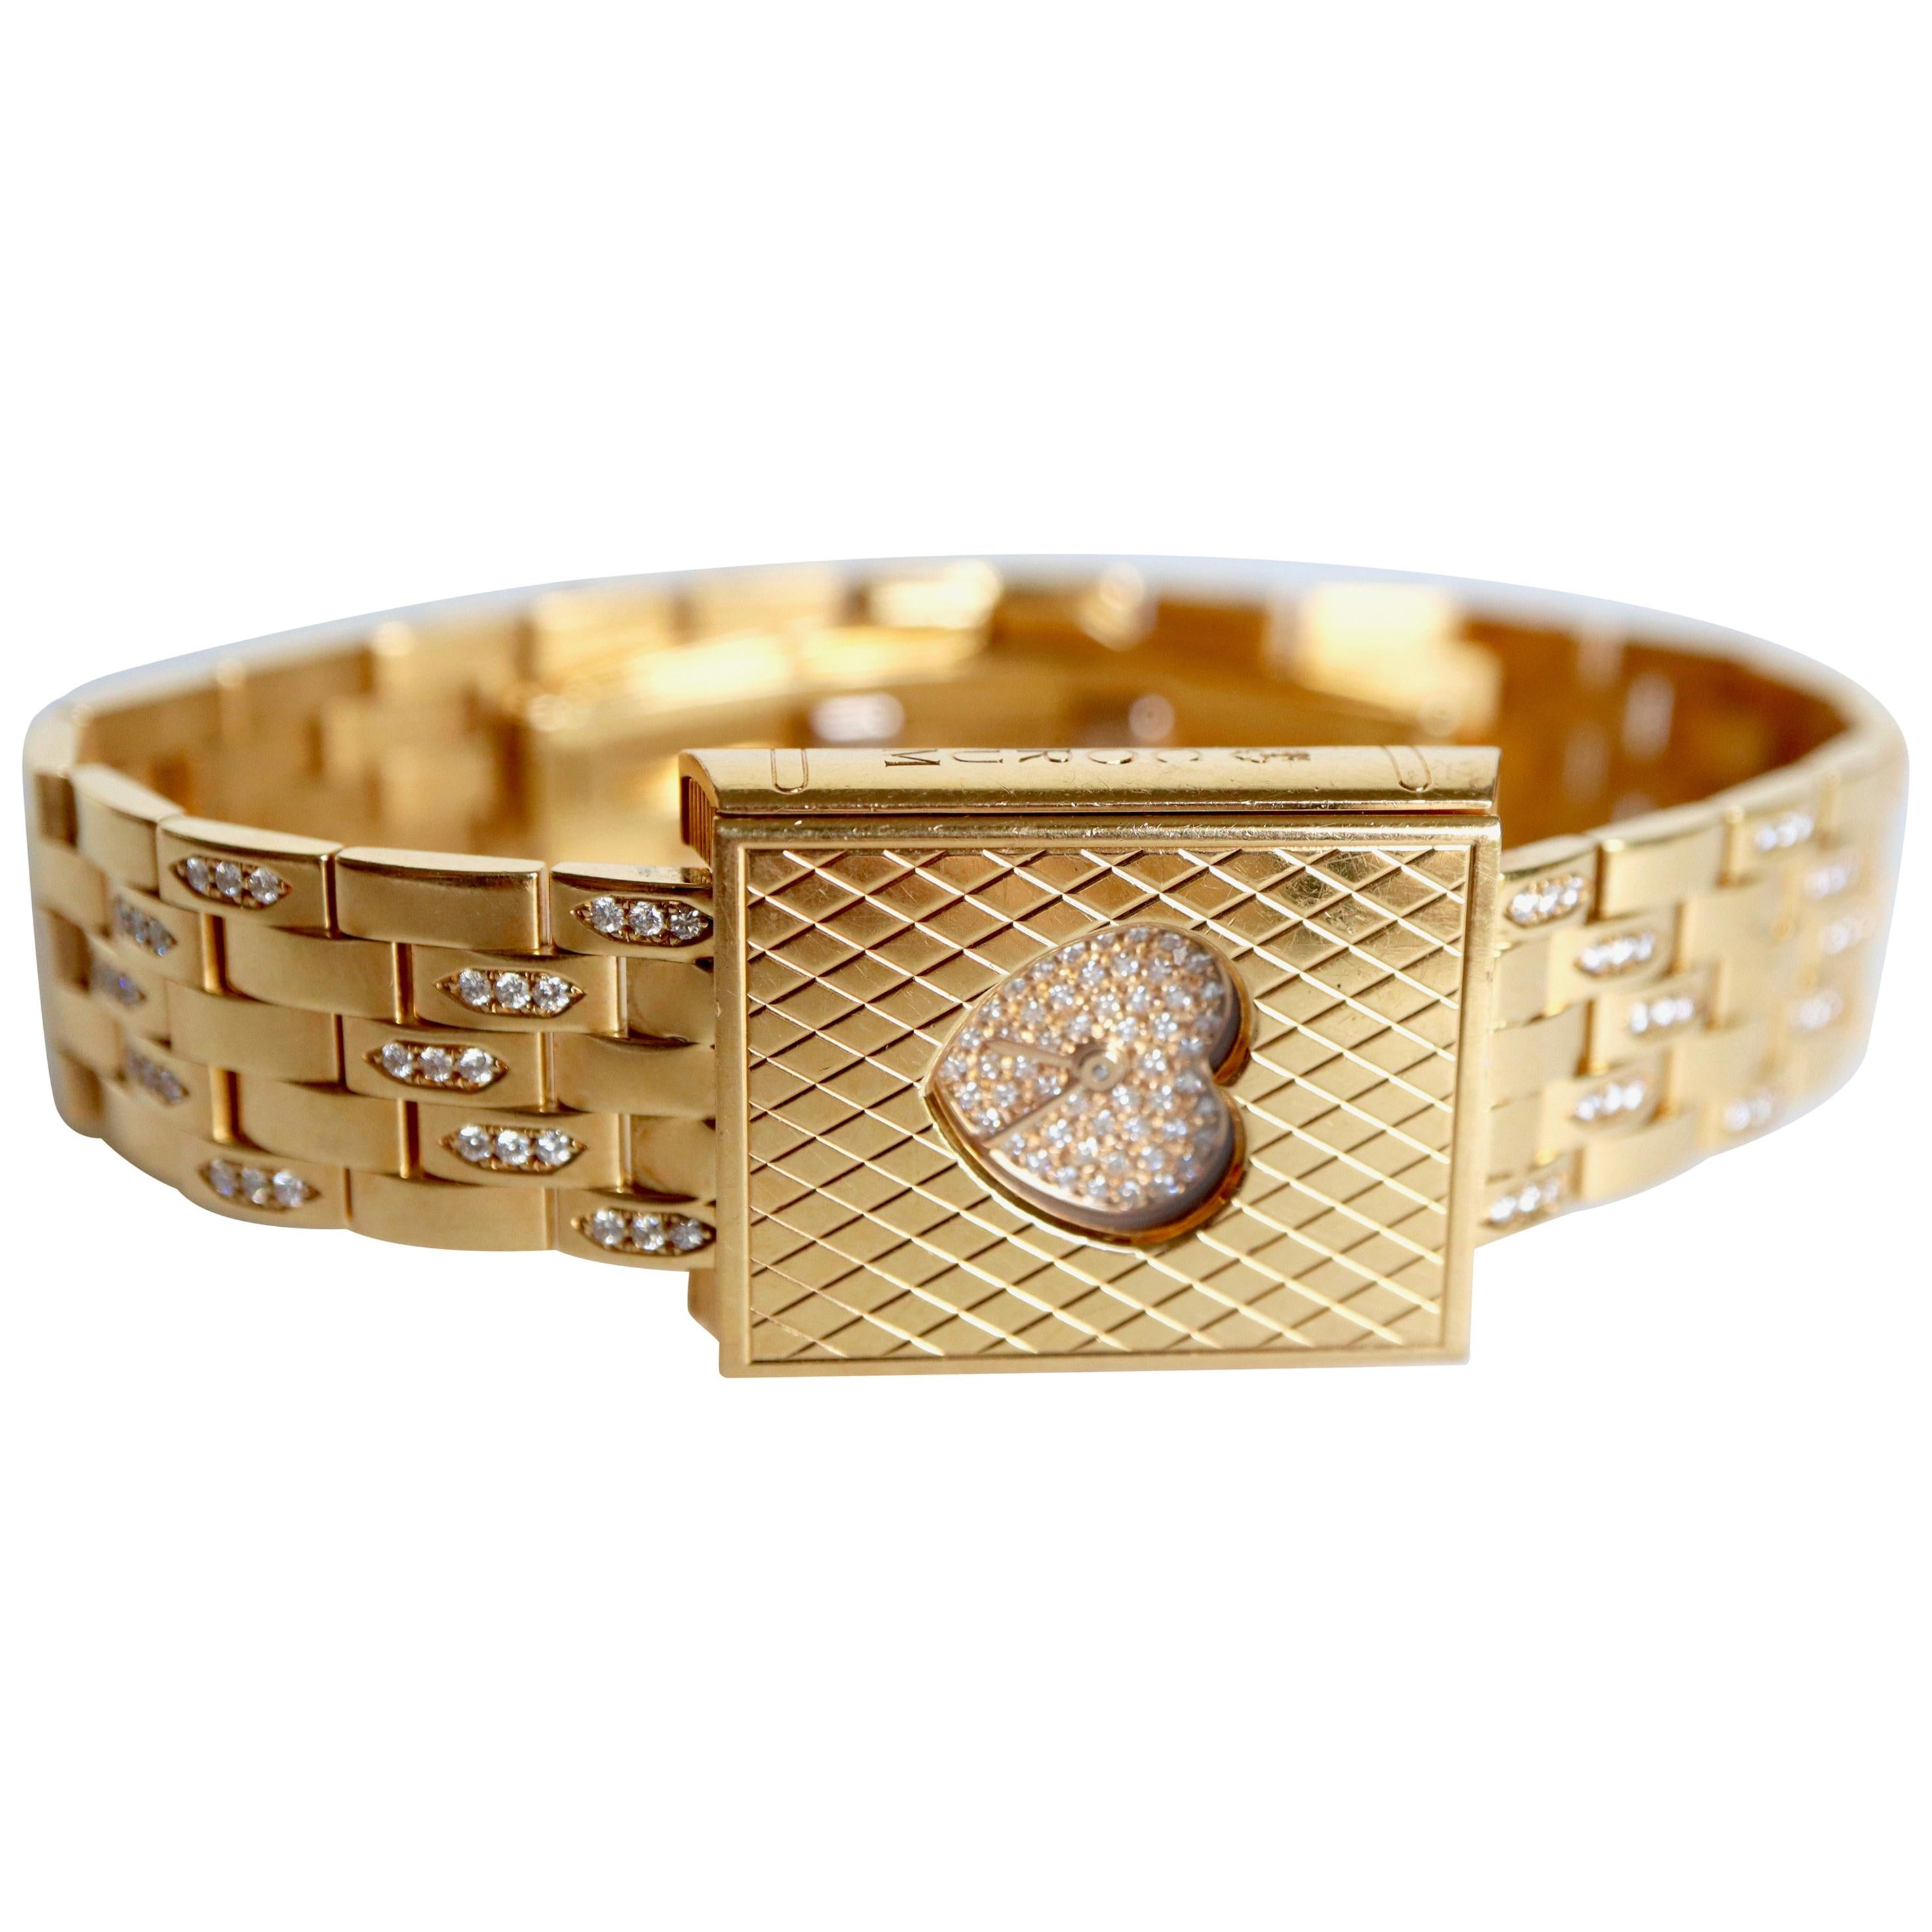 Corum Watch Love Story Model in 18K Yellow fiold Diamonds and Mother of Pearl